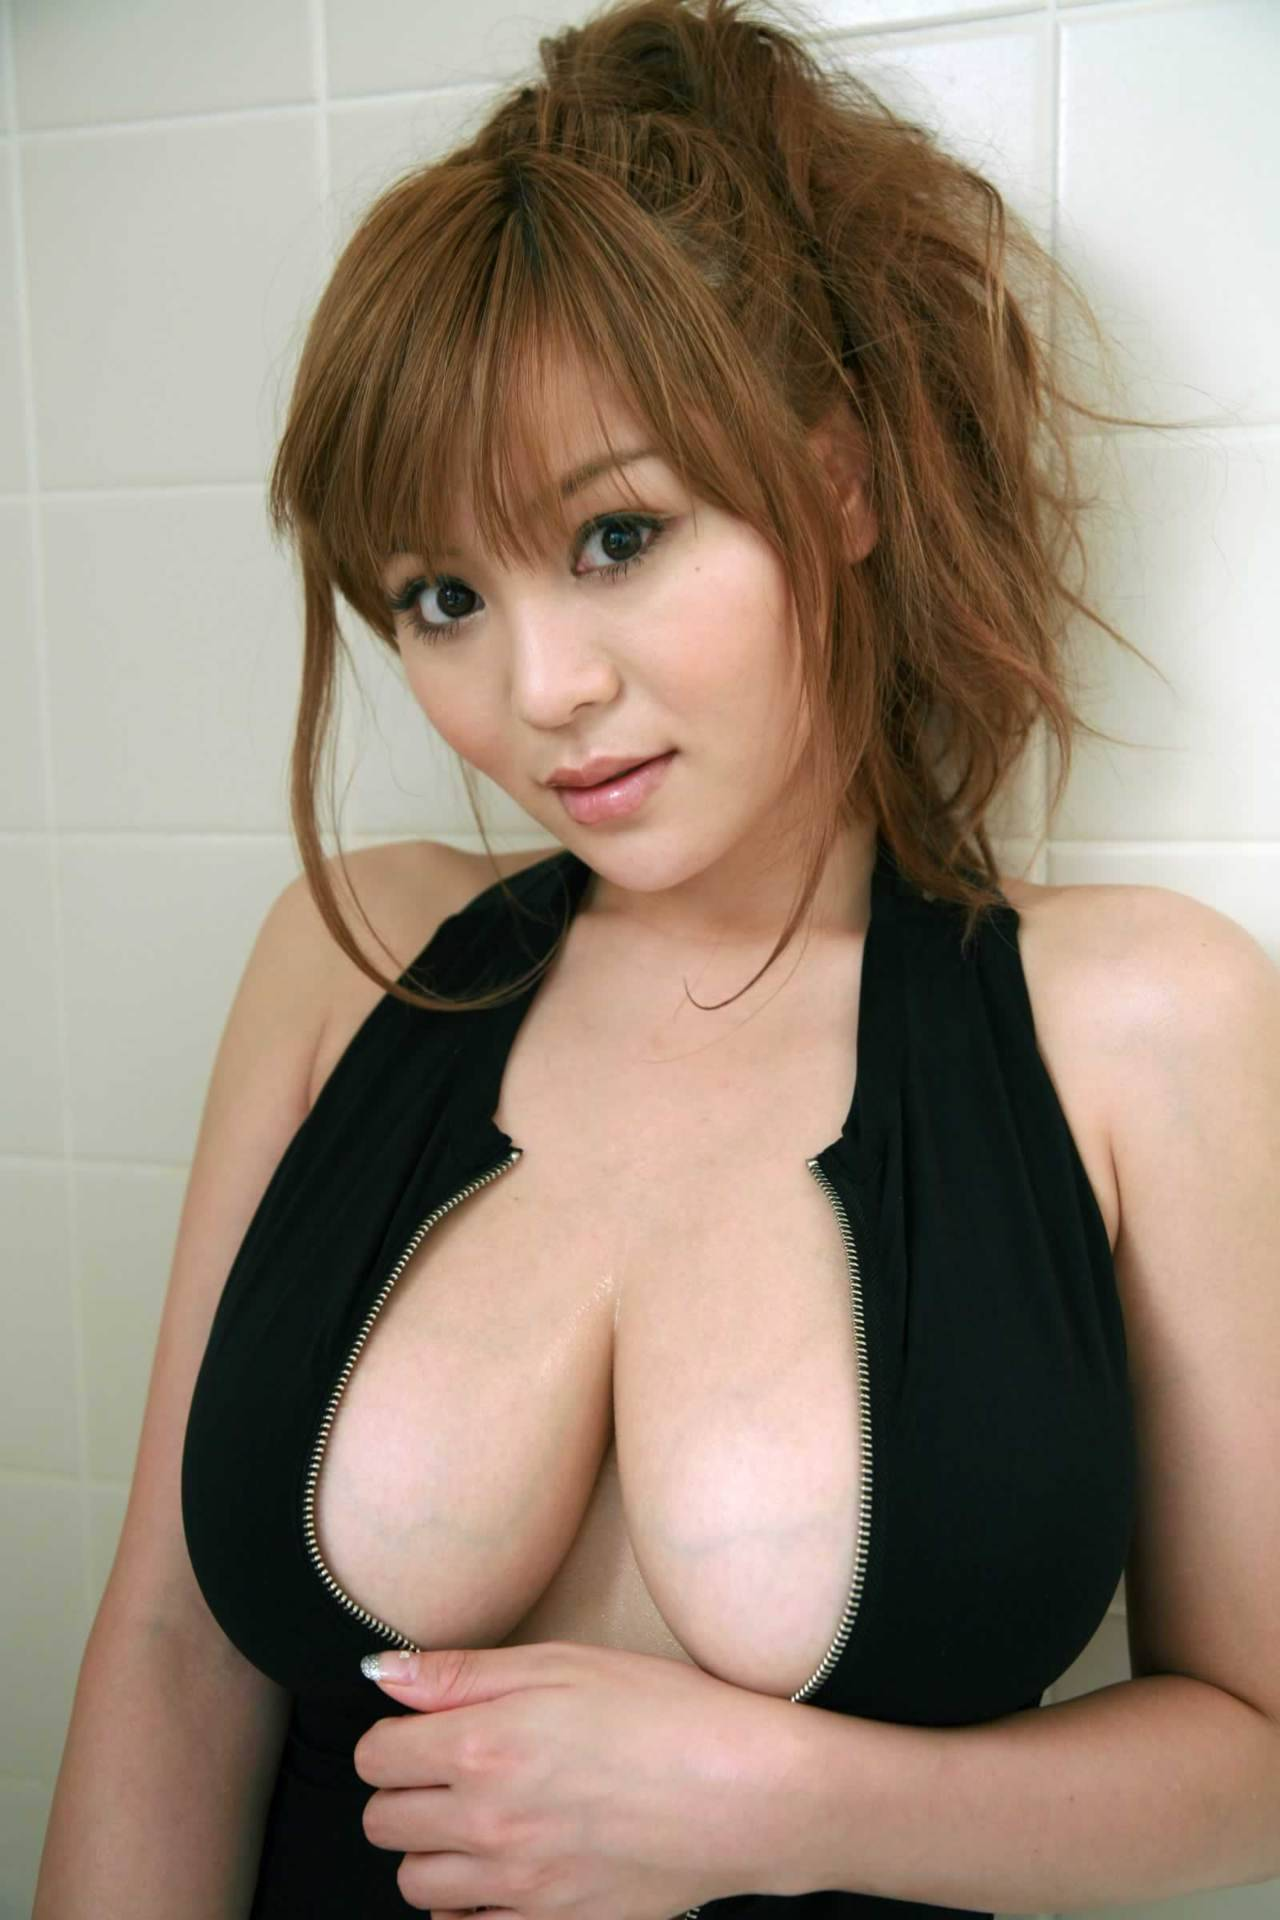 asialicious:  Yoko Matsugane   #thongthursday#thonglessthursday#thickthursday#asian#boobs